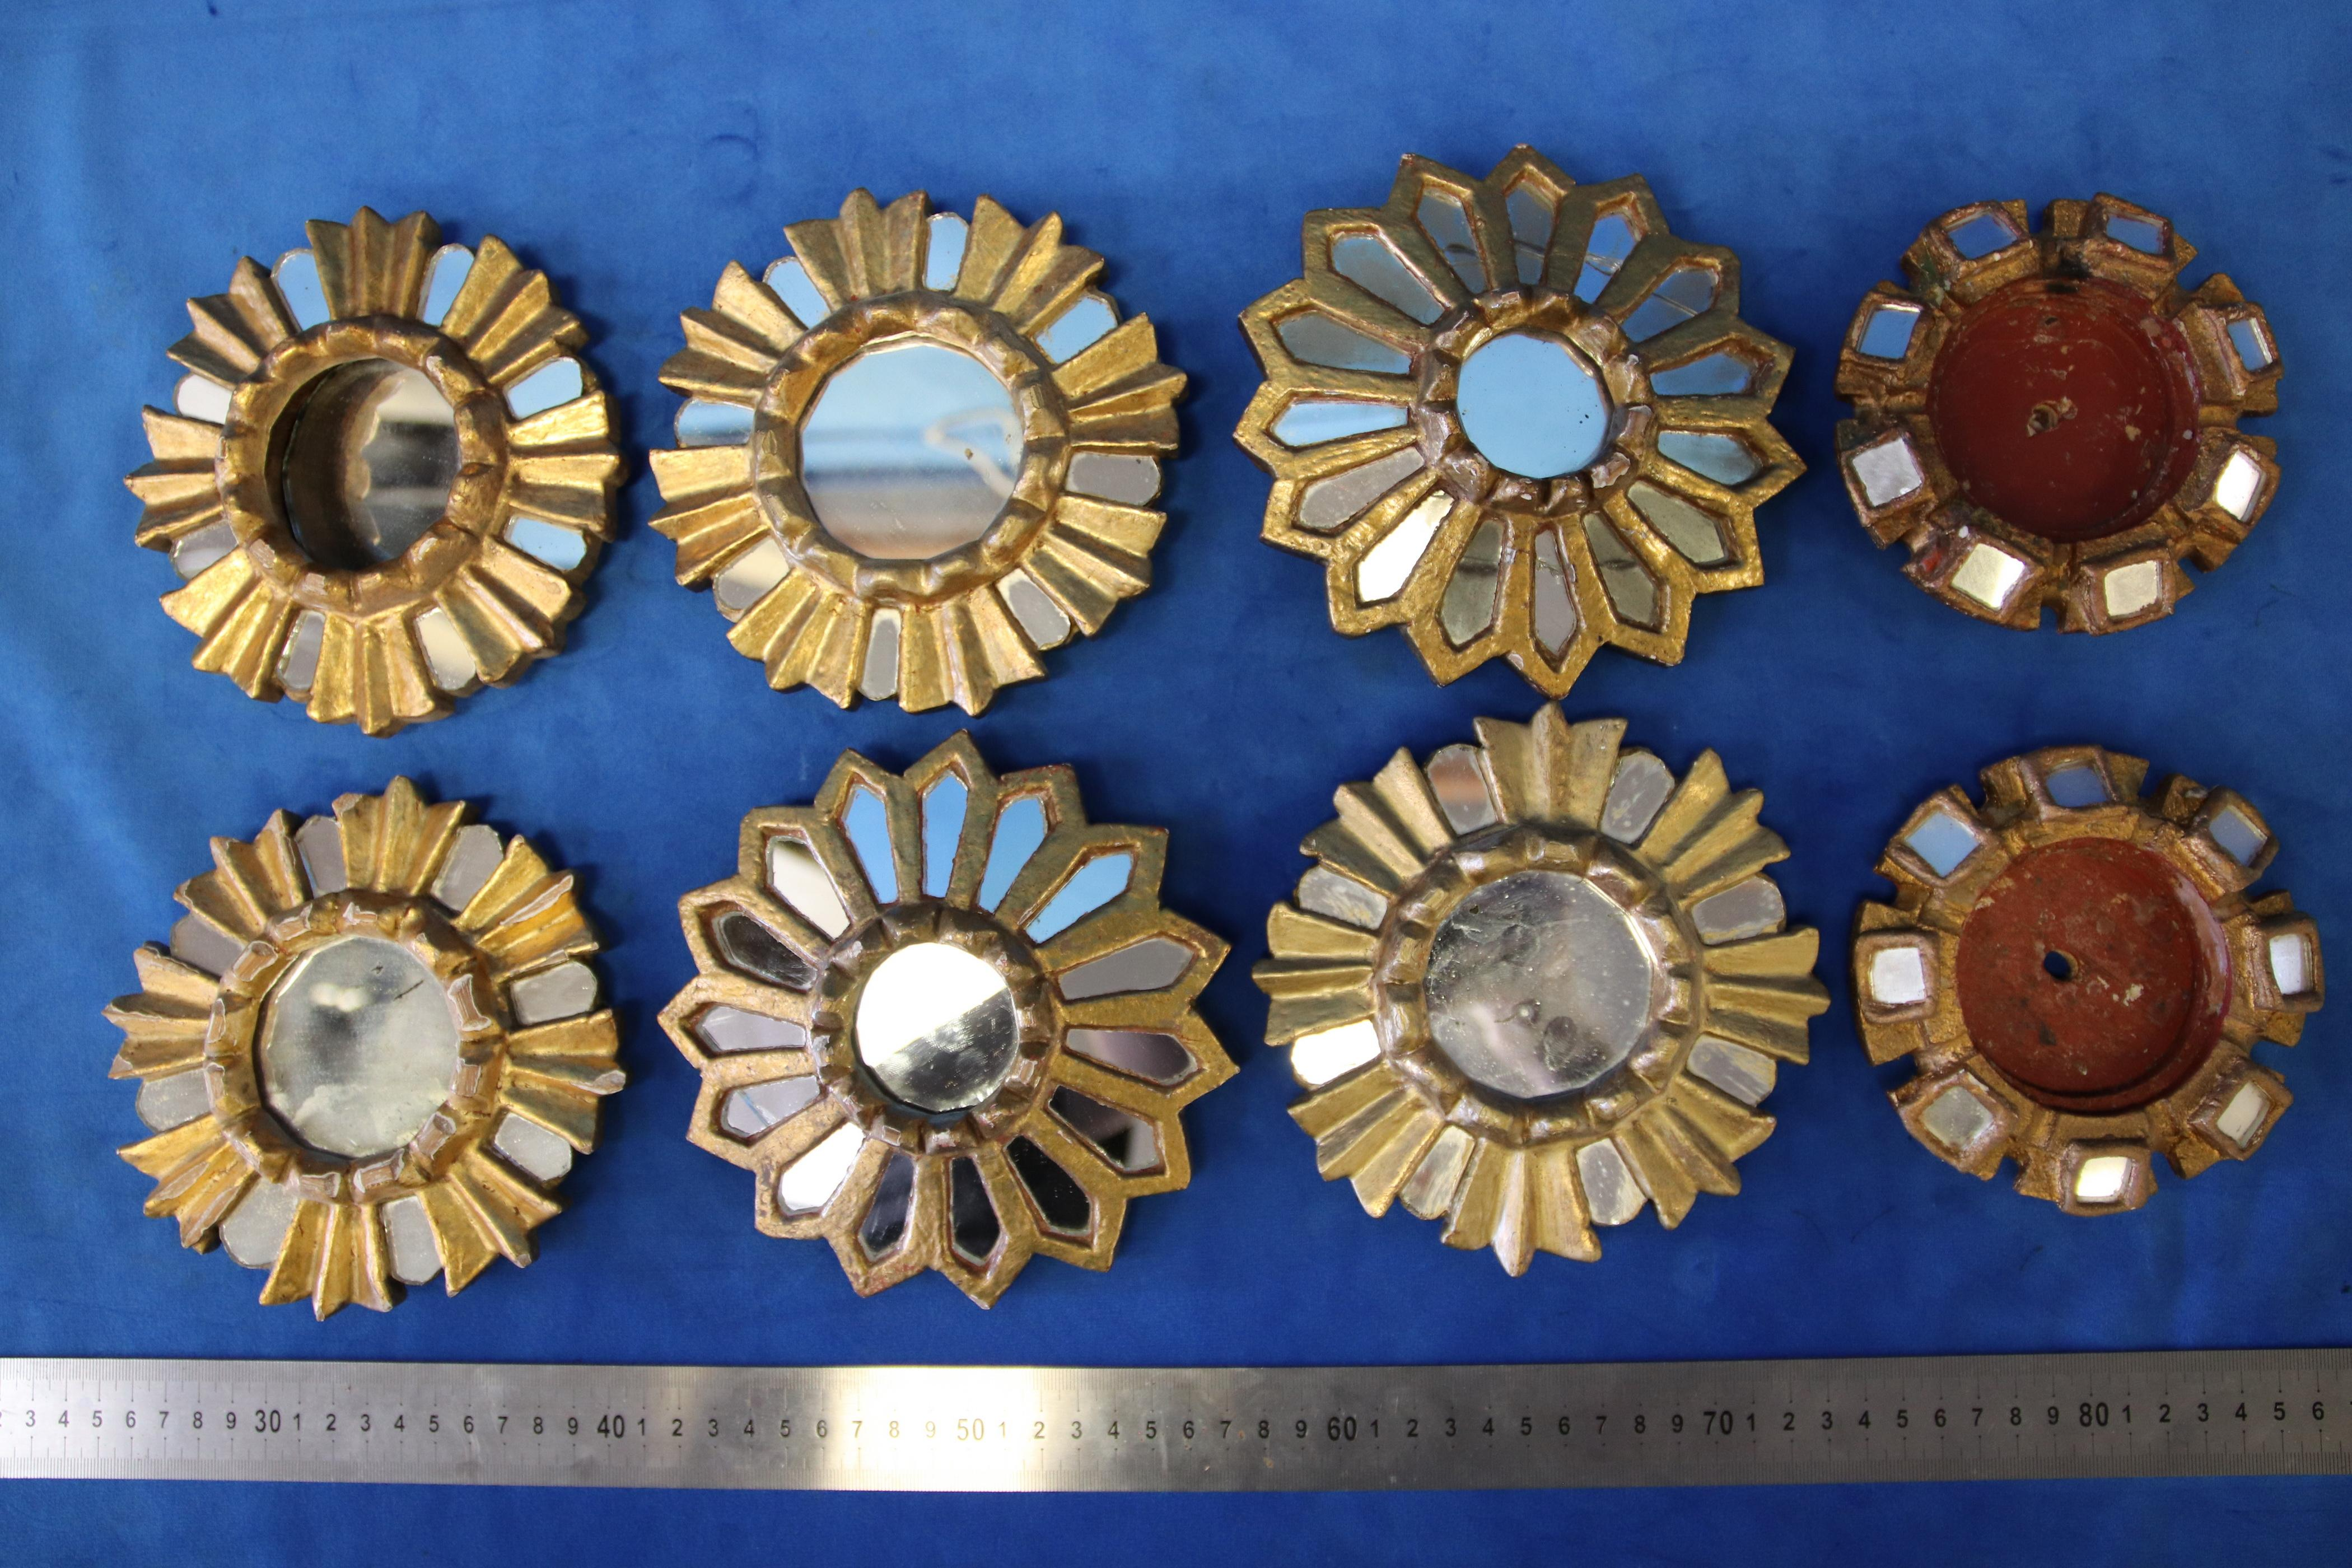 SET OF 6 SMALL PERUVIAN WALL MIRRORS, GOLD WOODEN FRAME WITH MIRROR PANELS 15CM DIAM (SOME A/F) AND 2 SMALL MIRROR FRAMES (A/F)